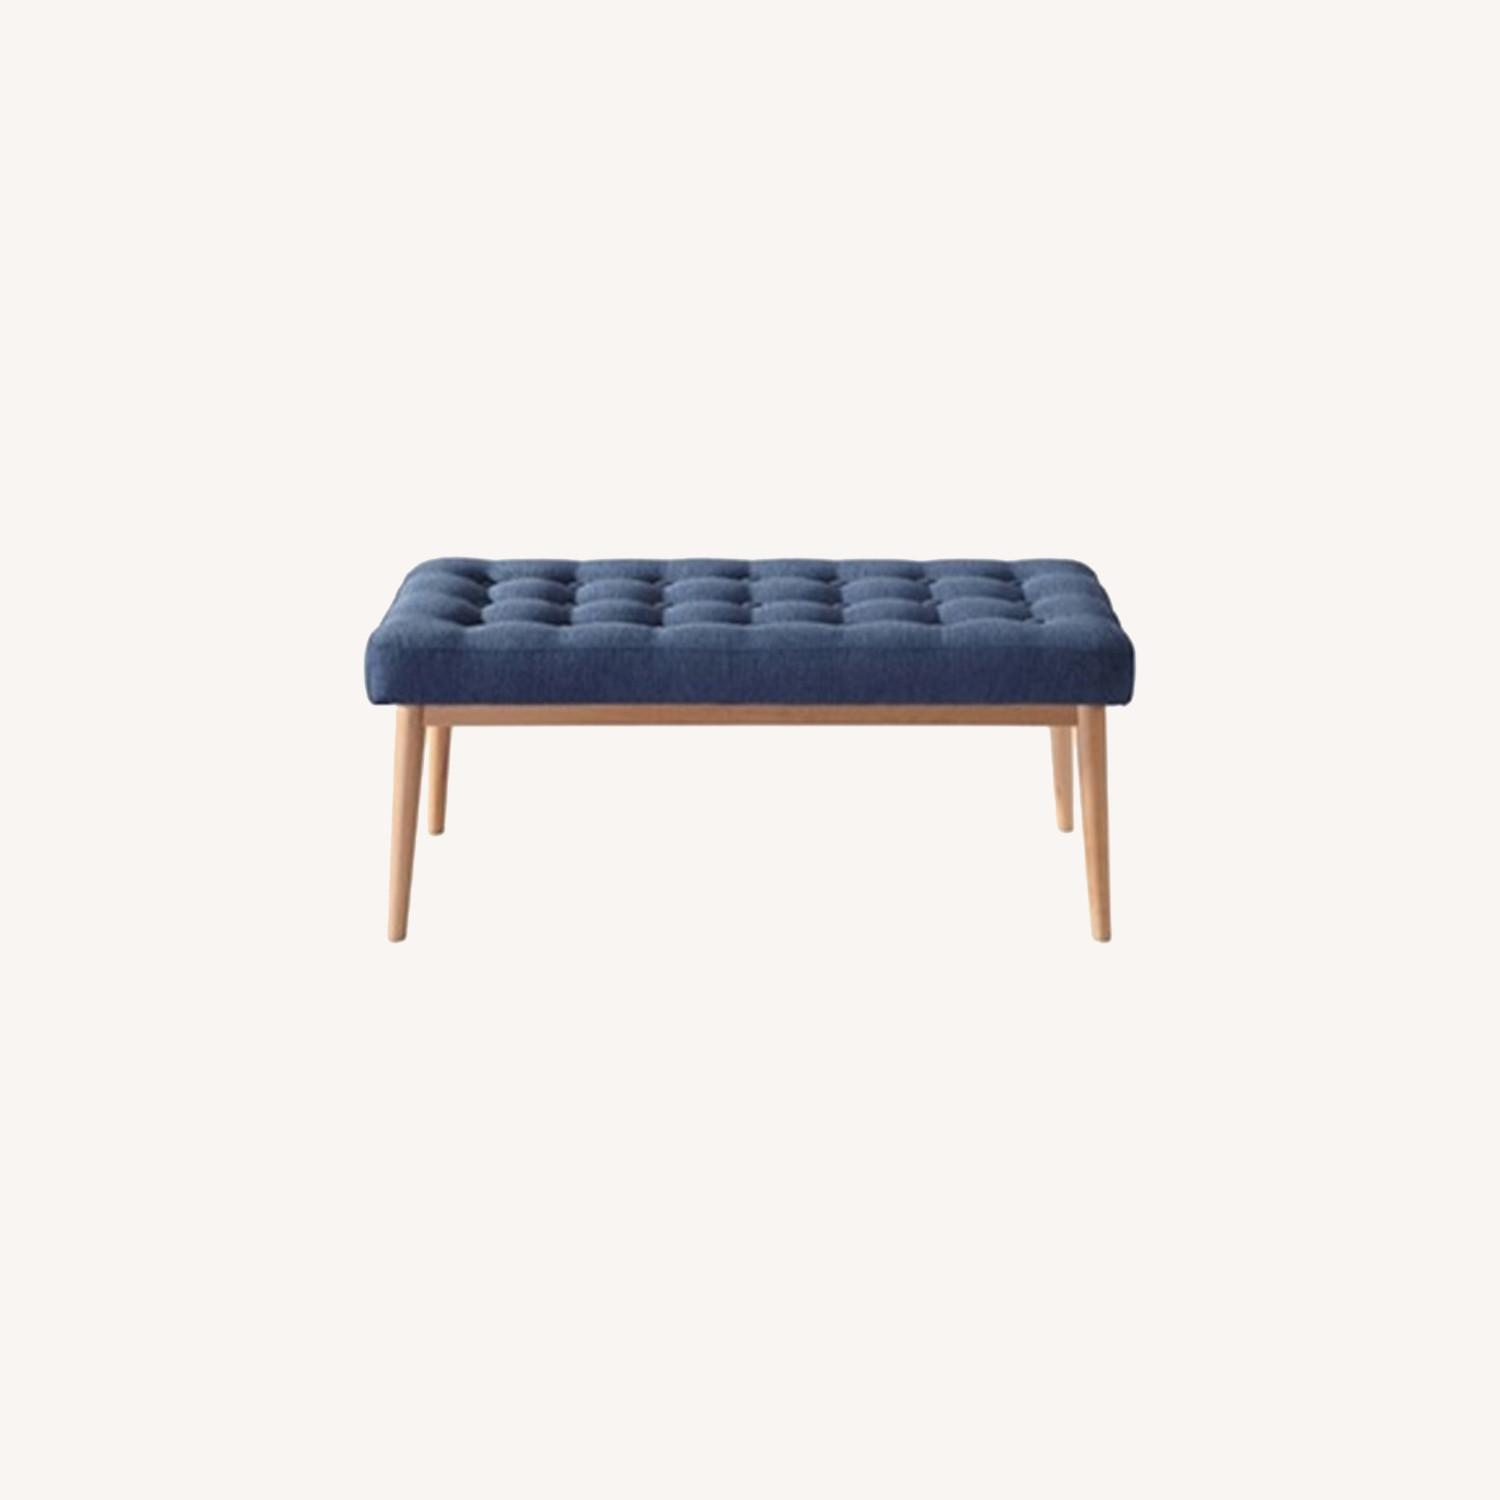 Bench In Blue Cotton Crafted W/ Beech Wood Base - image-6